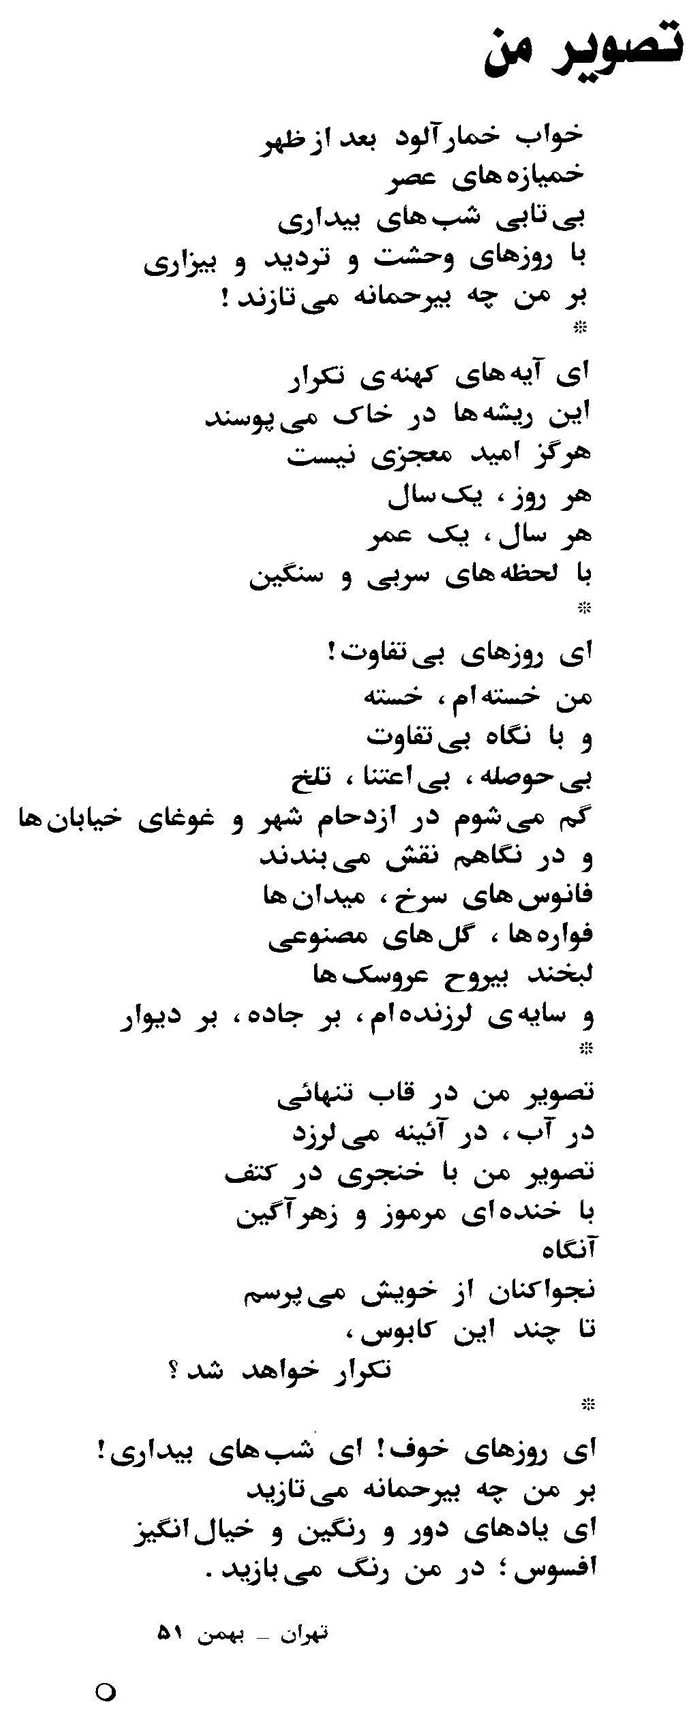 Poems By Ali Asghar Vaghedi, Iranian Literature, Persian Poetry On ...